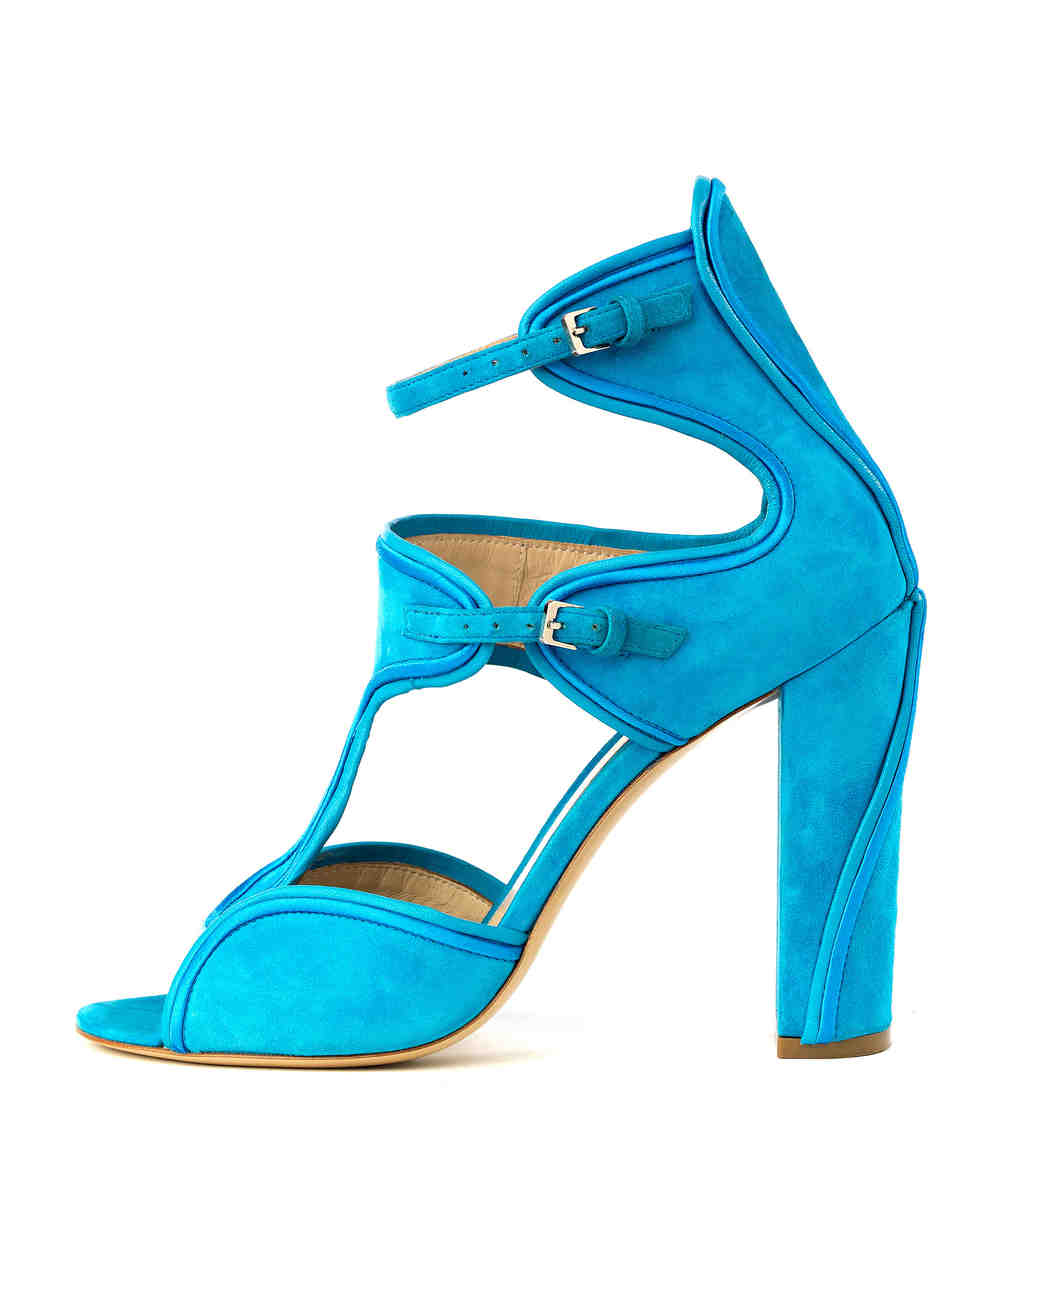 Monique Lhuillier Anja Suede Sandals